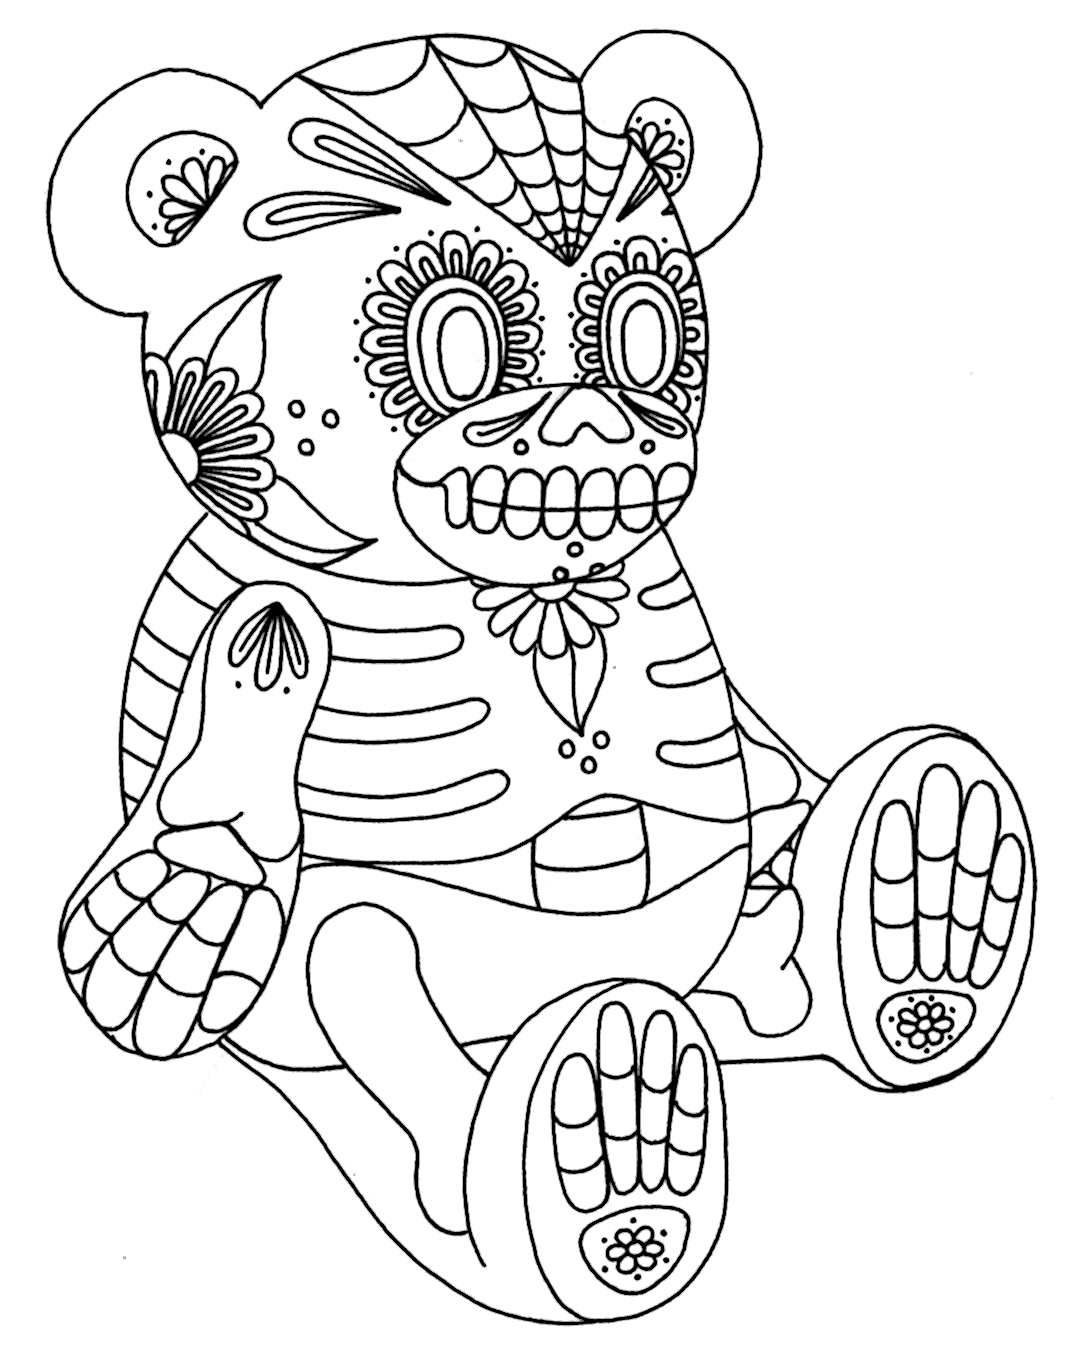 coloring pages skull free printable skull coloring pages for kids coloring pages skull